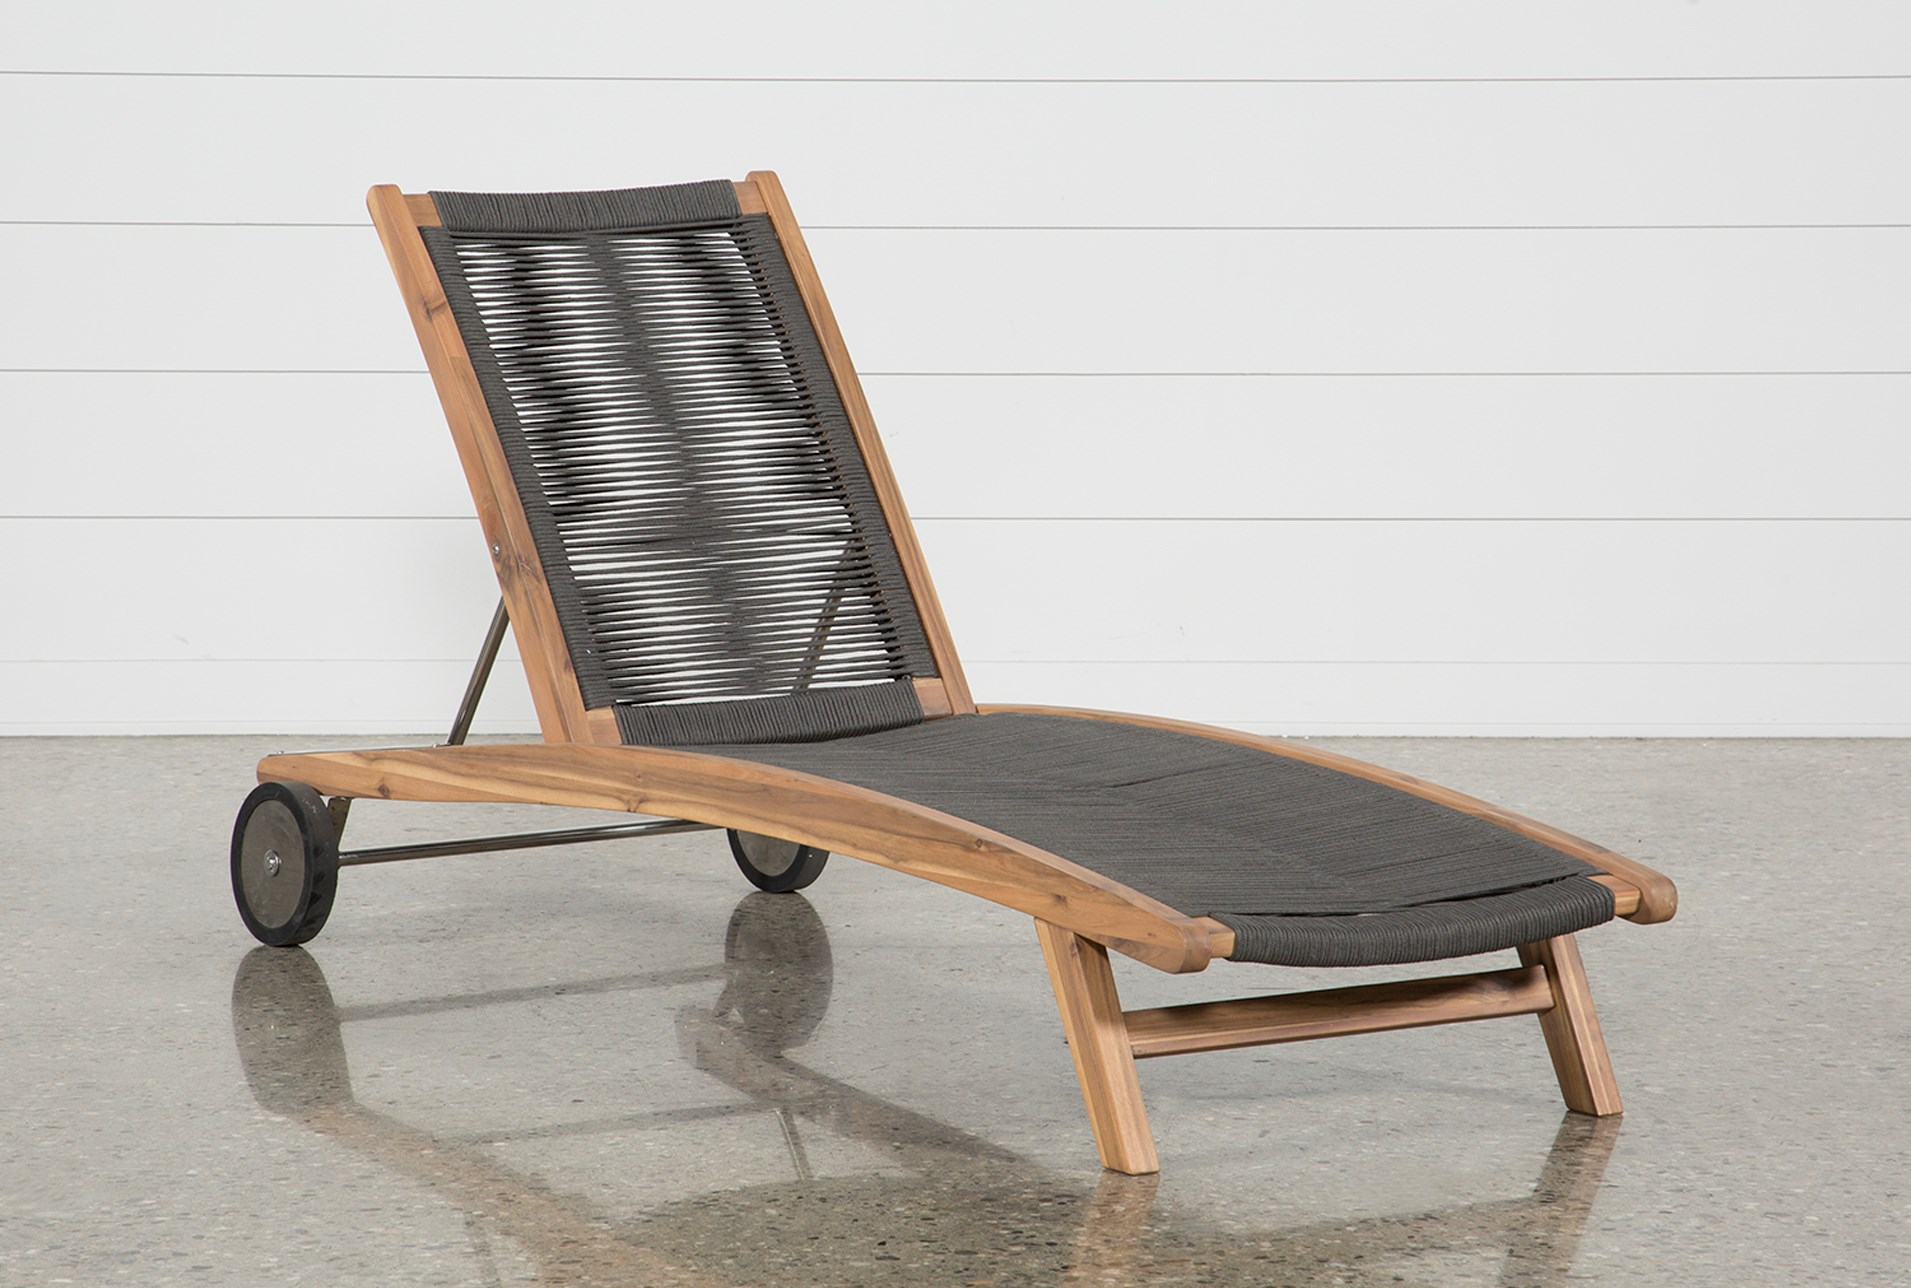 Outdoor sienna chaise lounge qty 1 has been successfully added to your cart